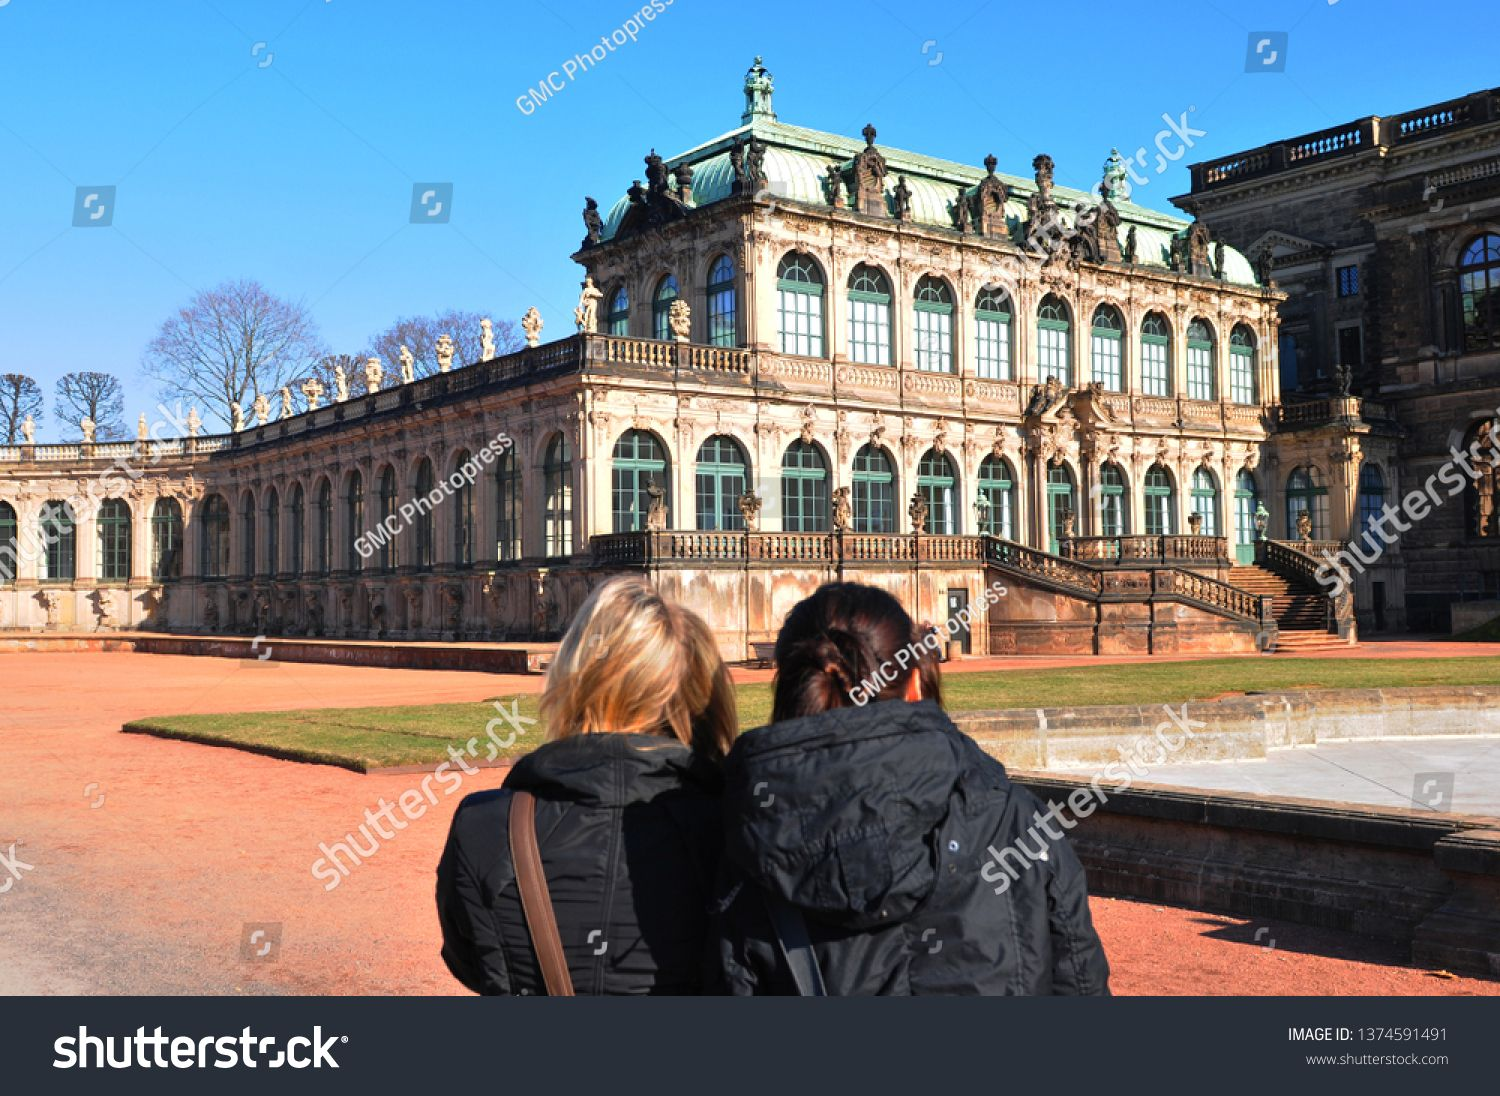 The Zwinger In Dresden City Belongs To Germany S Most Important Late Barock Buildings Ad Paid City Belongs Zwinger Dresden In 2020 City Building Landmarks